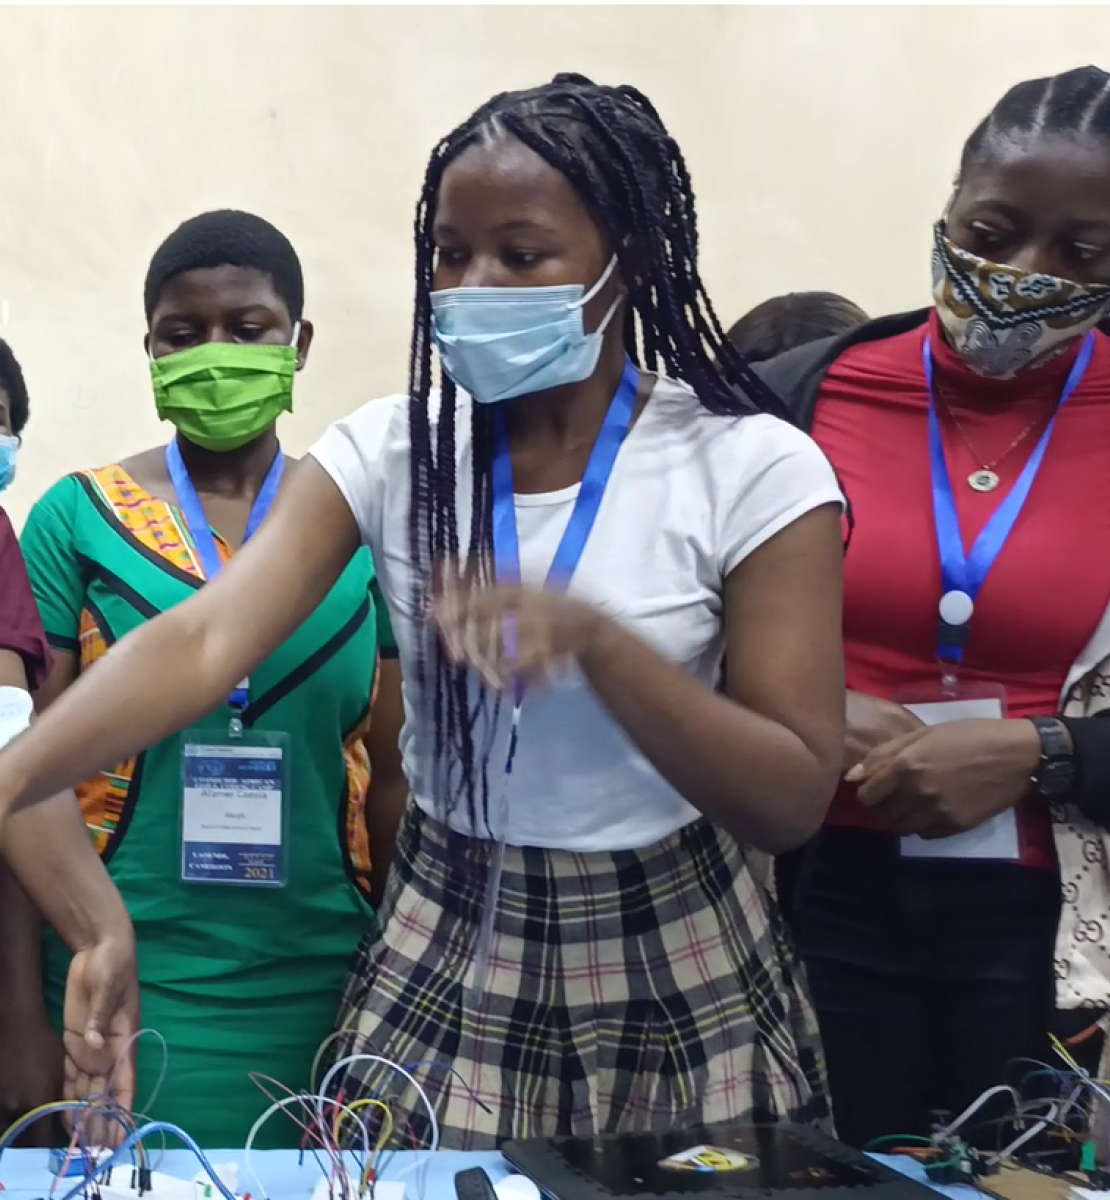 A group of young girls in masks point to computers.